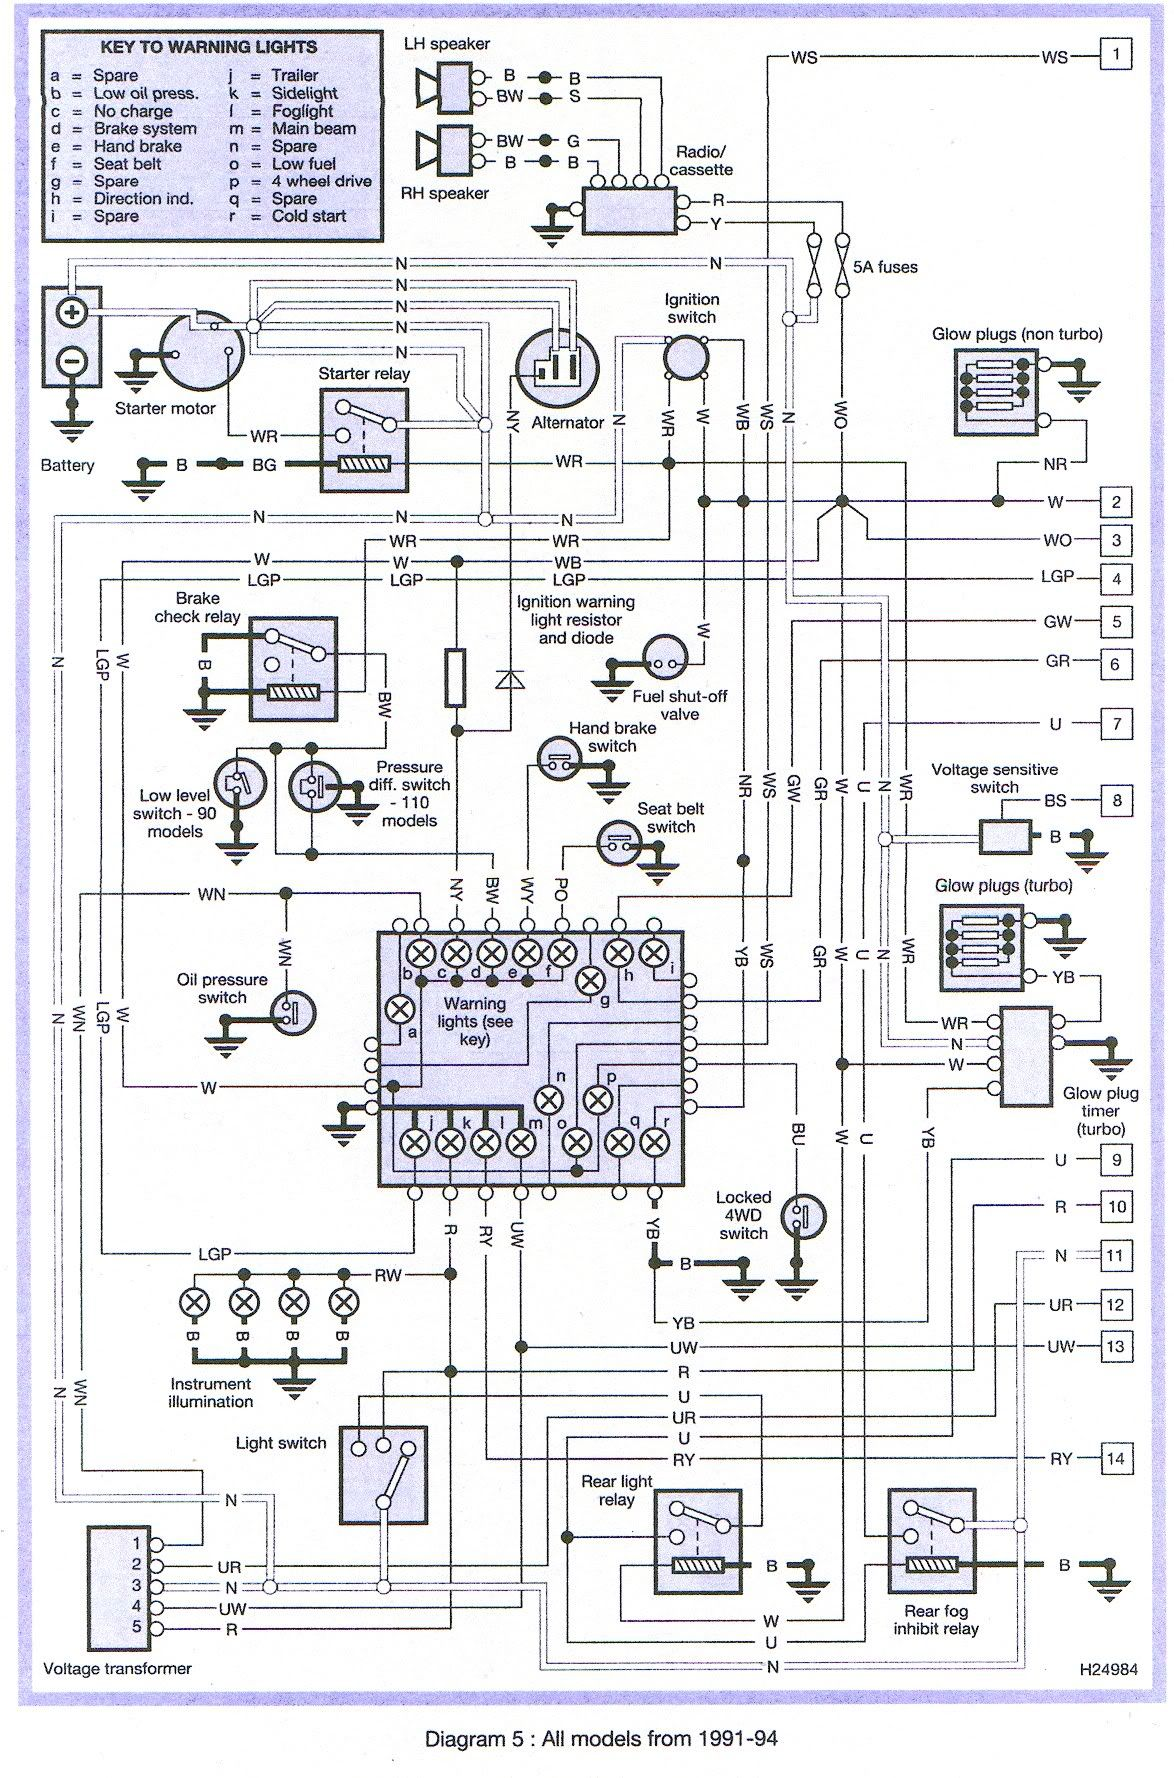 07629544bfff38ad2881b2c21312c6e6 land rover discovery wiring diagram manual repair with engine  at n-0.co